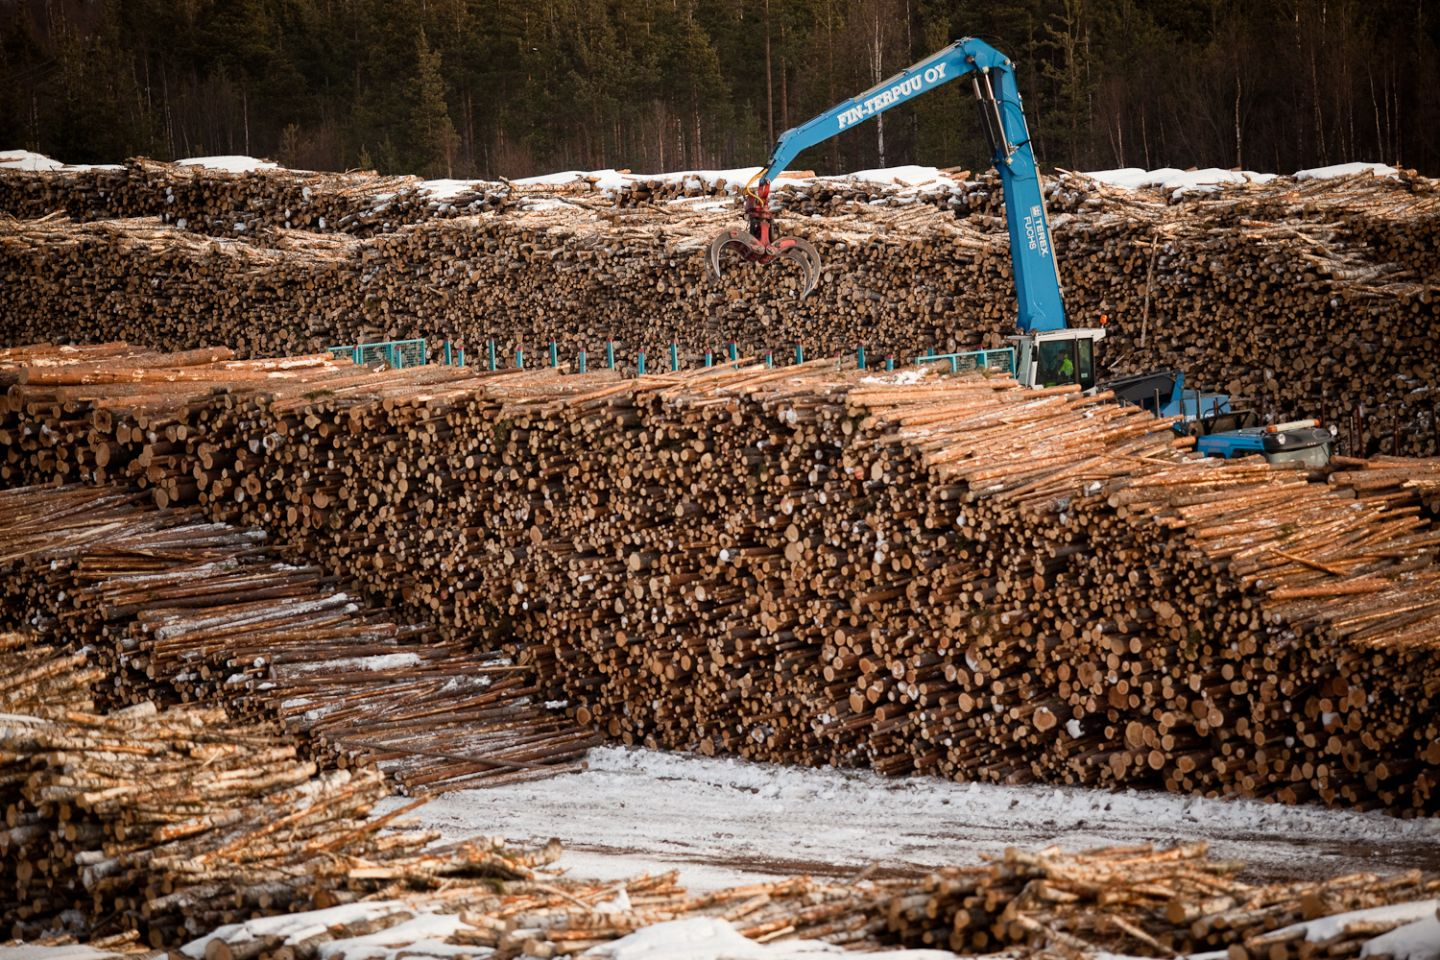 Countless chopped tree trunks in a big pile